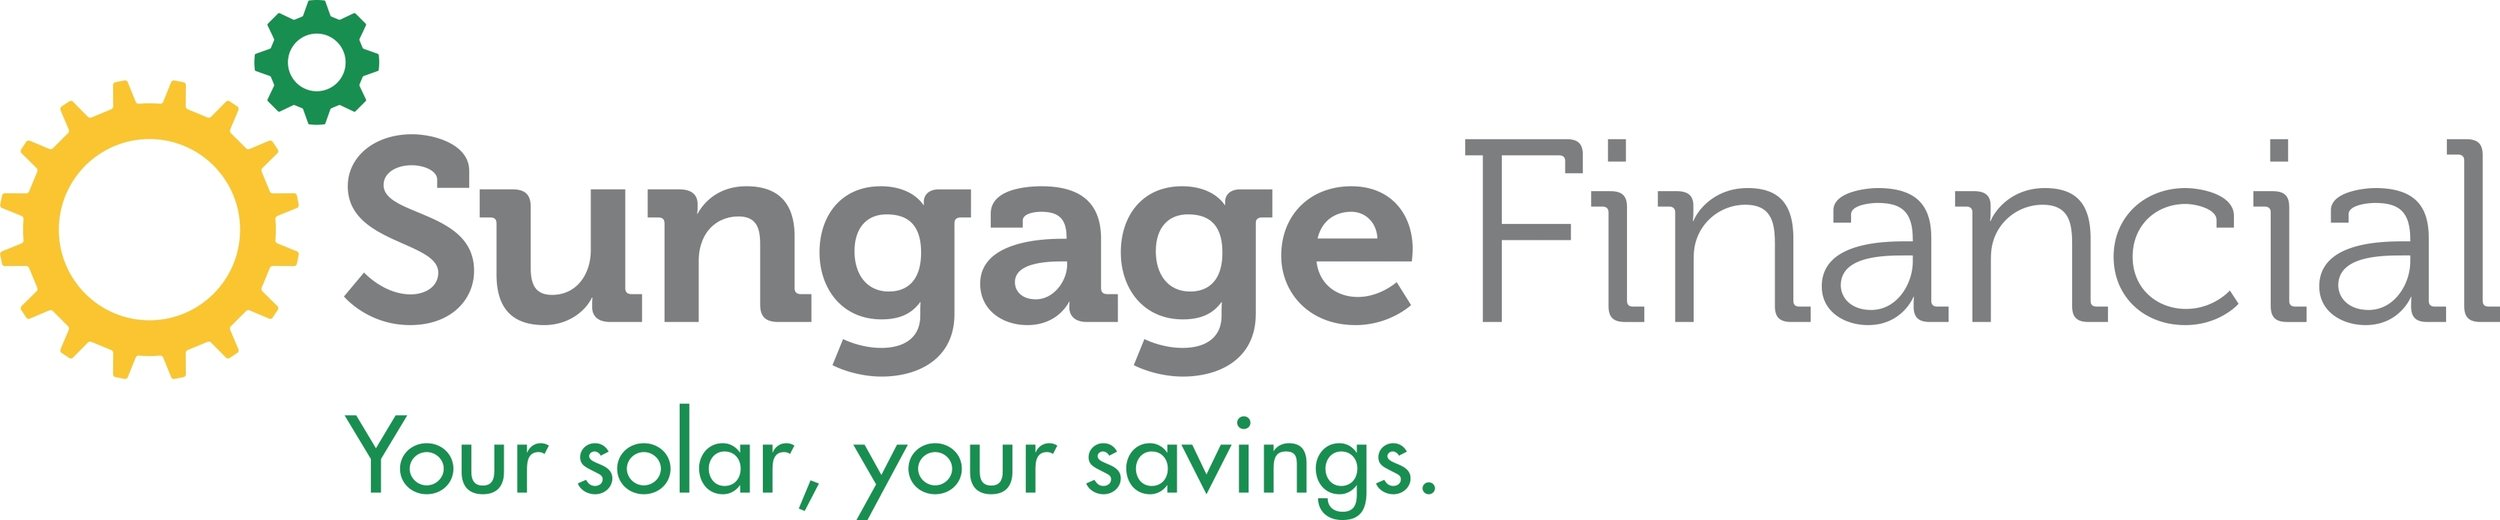 Sungage Financial  - A solar financing innovator and creator of solar's first secured solar loan, Sungage believes ownership maximizes solar's payback to homeowners.Partnering with leading solar installers, their cutting edge online platform makes financing easy and affordable.